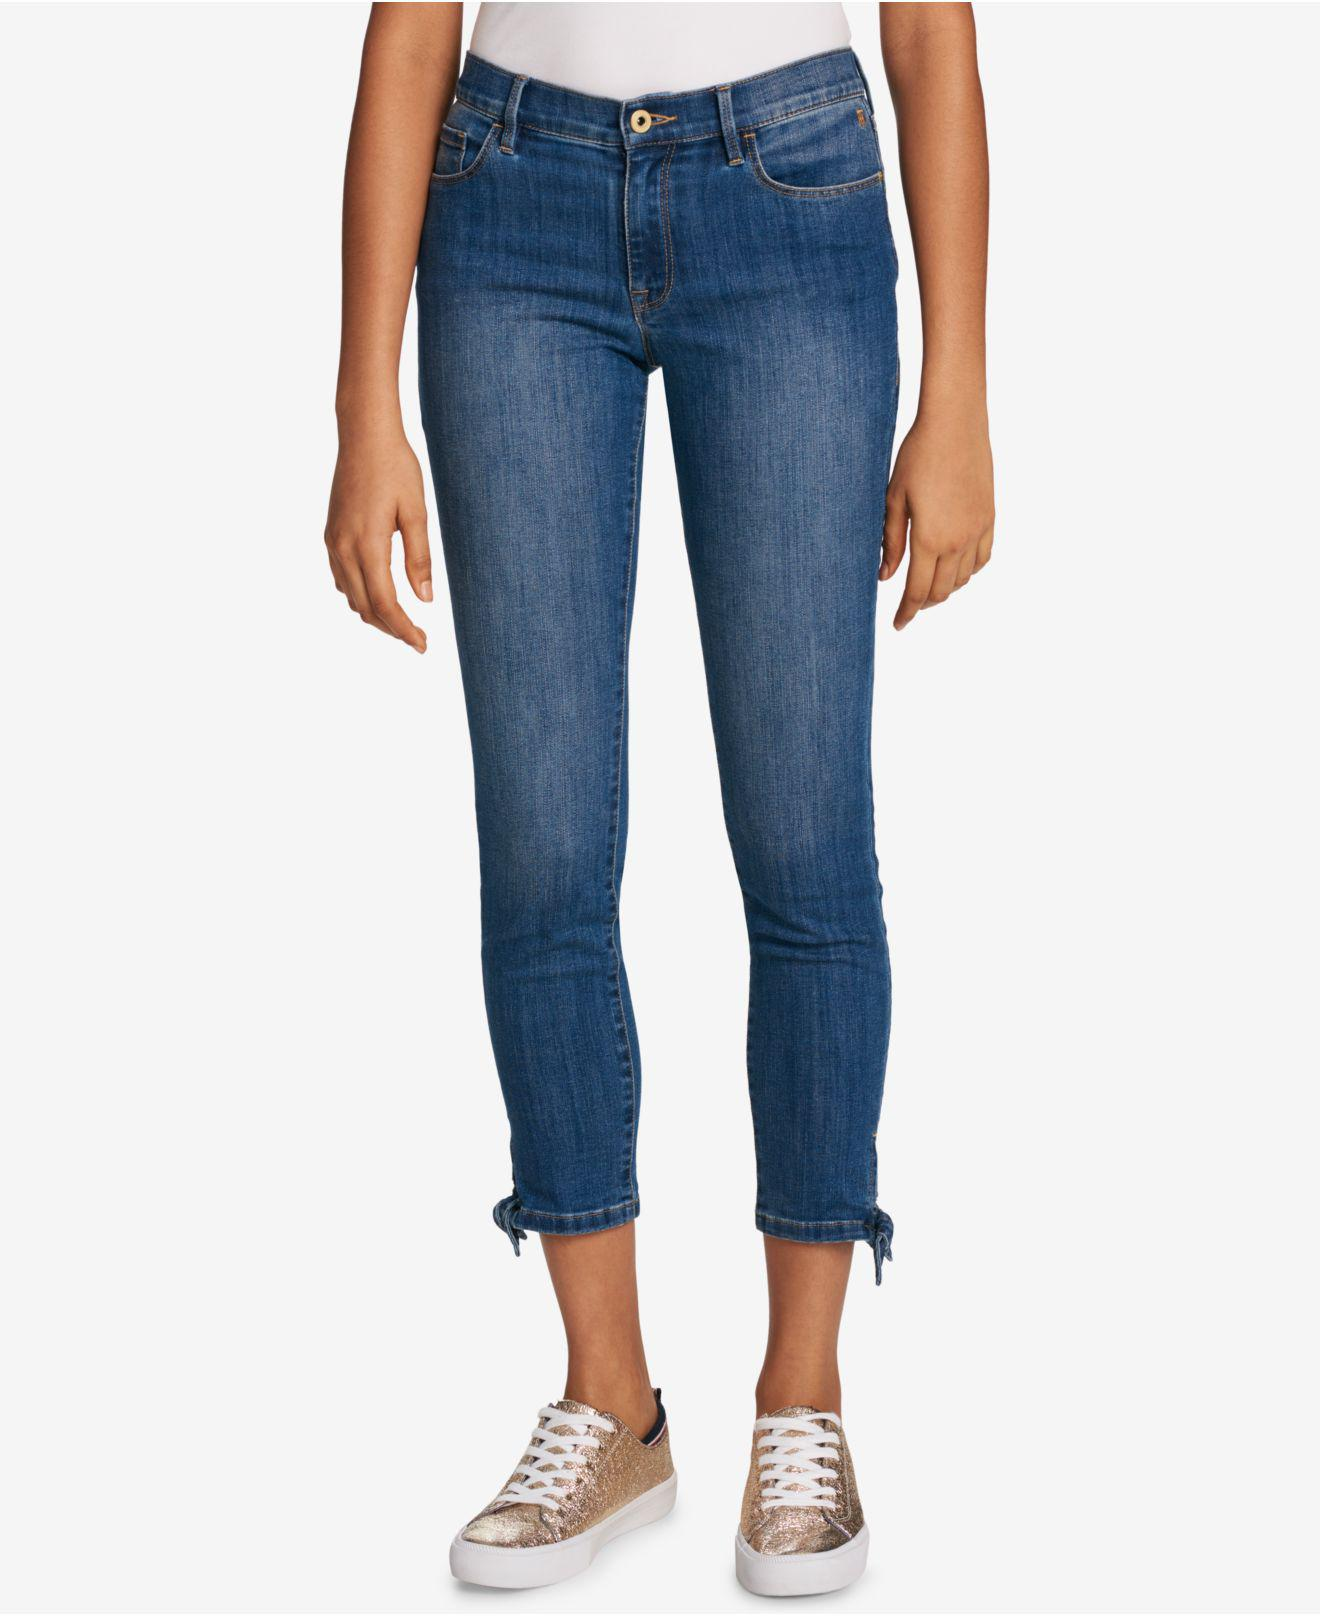 be532047dbf4a Lyst - Tommy Hilfiger Tie-ankle Skinny Jeans in Blue